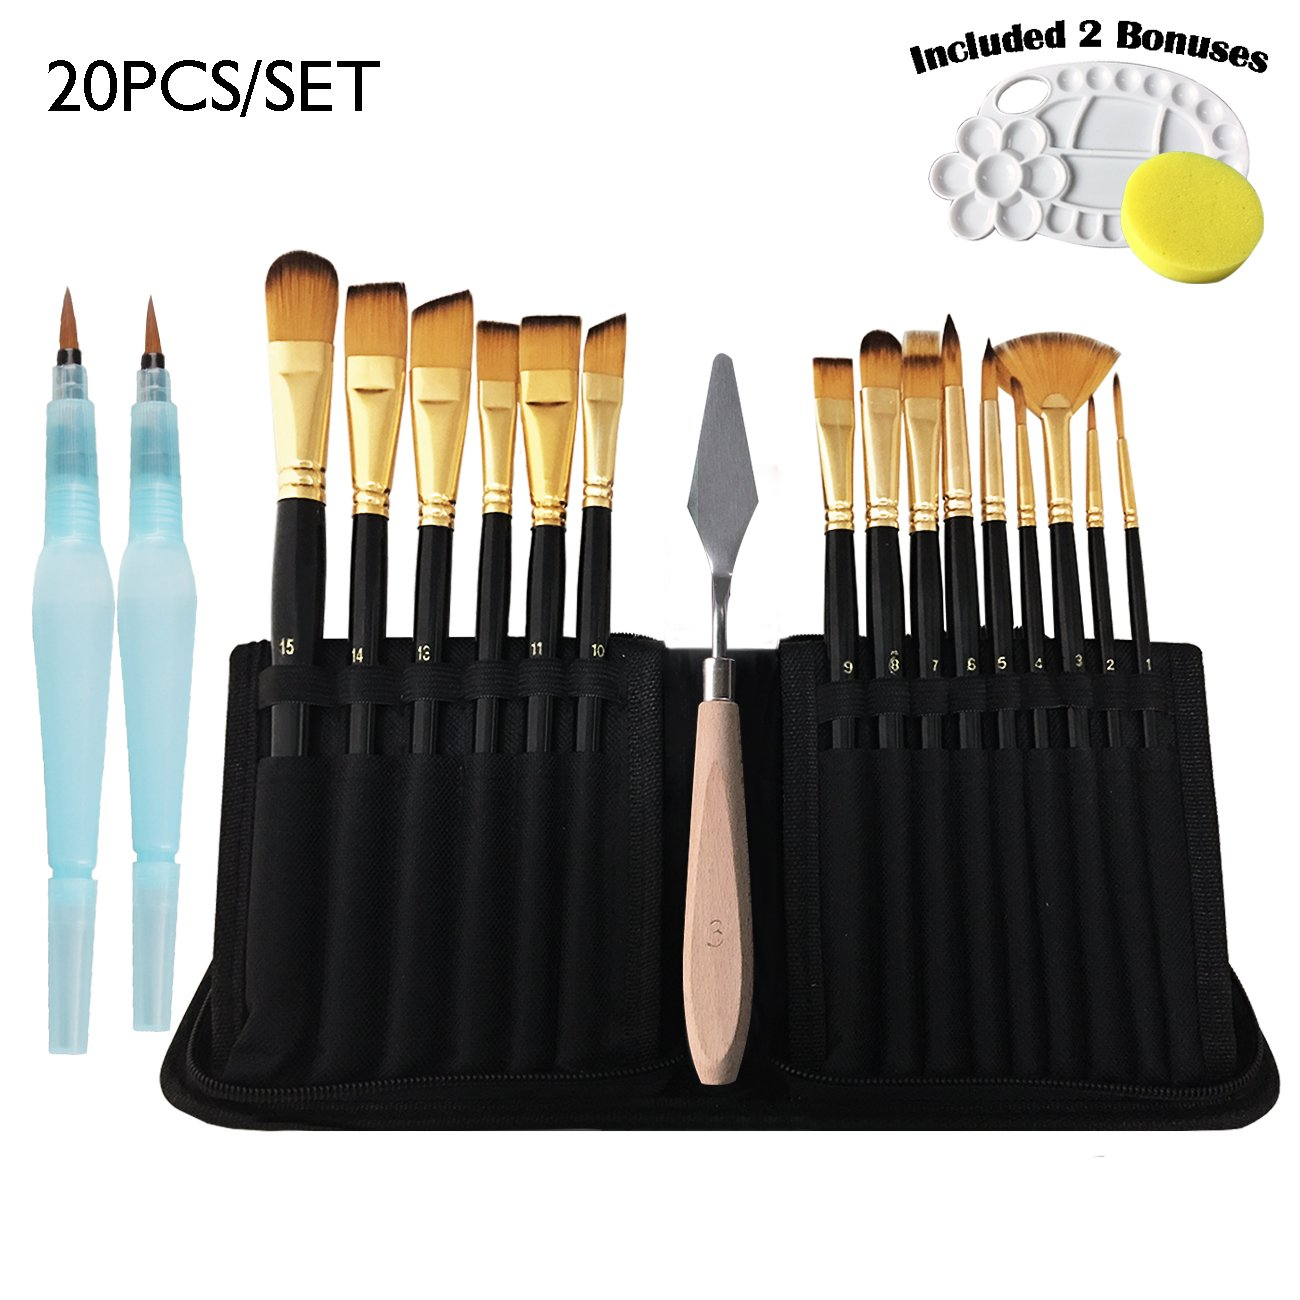 Lasten Paint Brush Set, Professional Paint Brushes Nylon Hair Artist Acrylic Brush for Watercolor Oil Acrylic Gouache Painting(12 pcs/set)